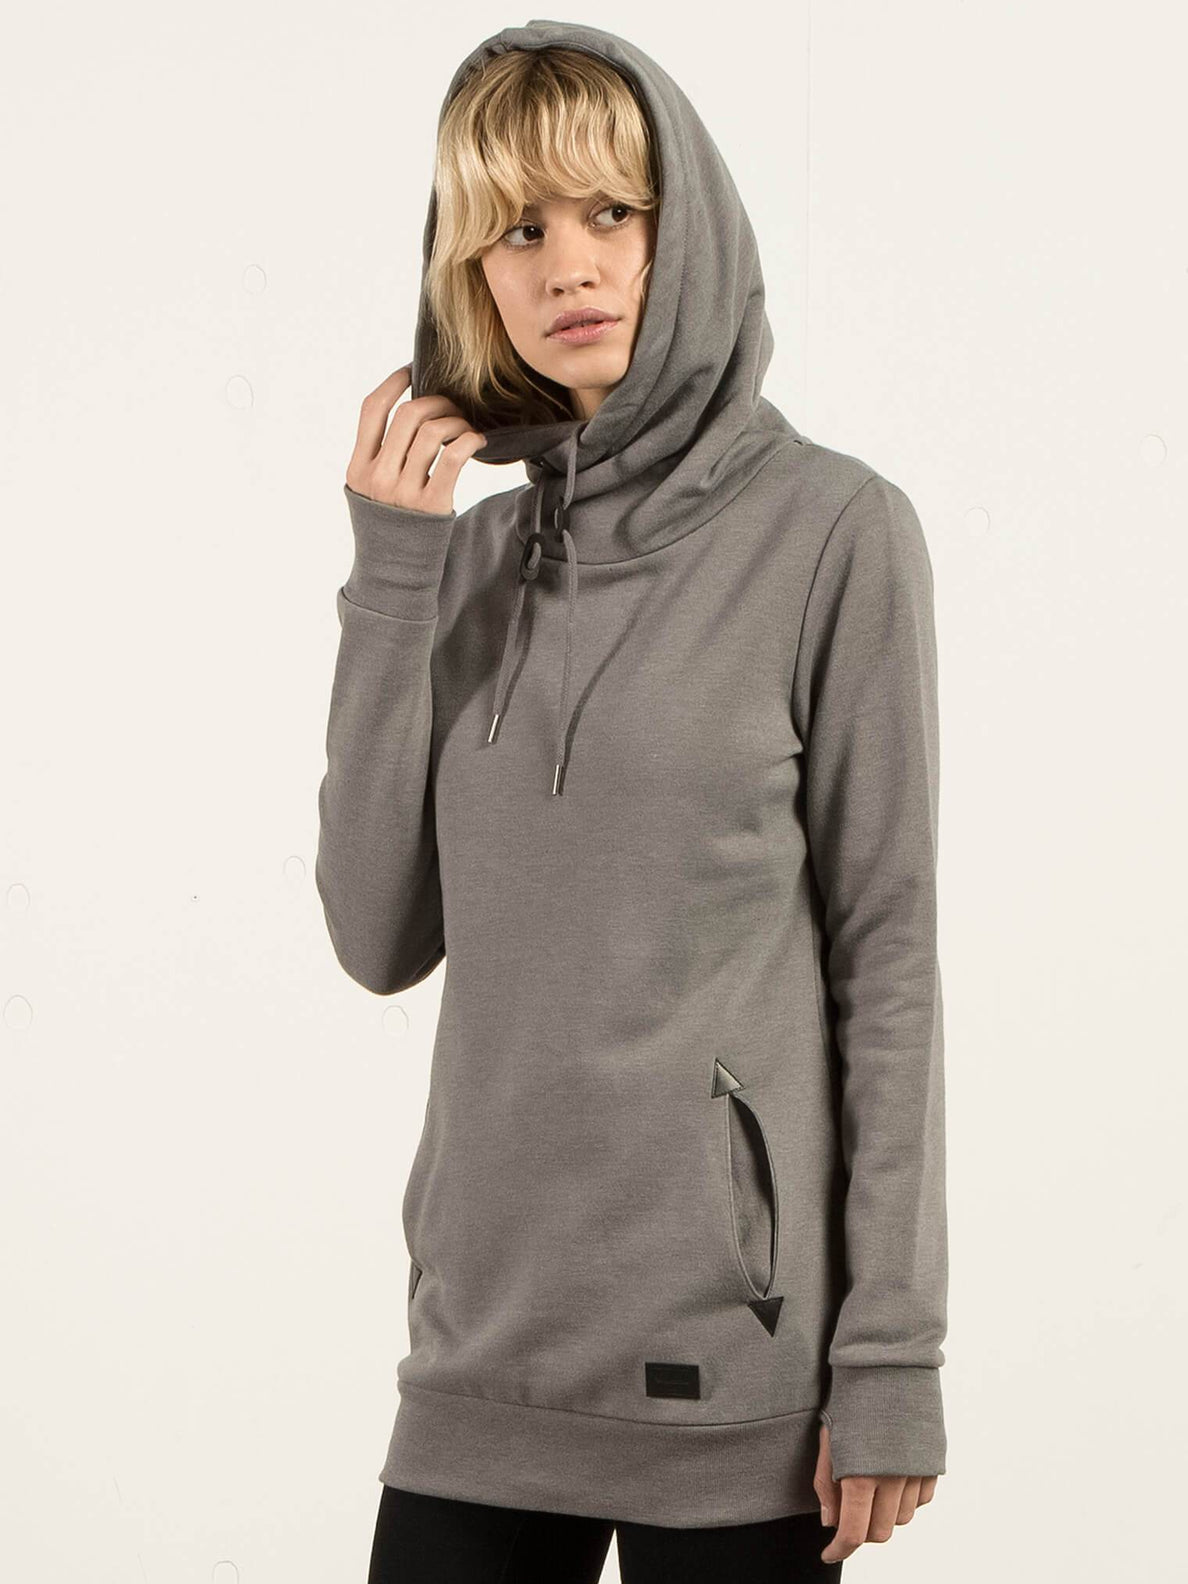 Hoodie Walk On By High Neck - Charcoal